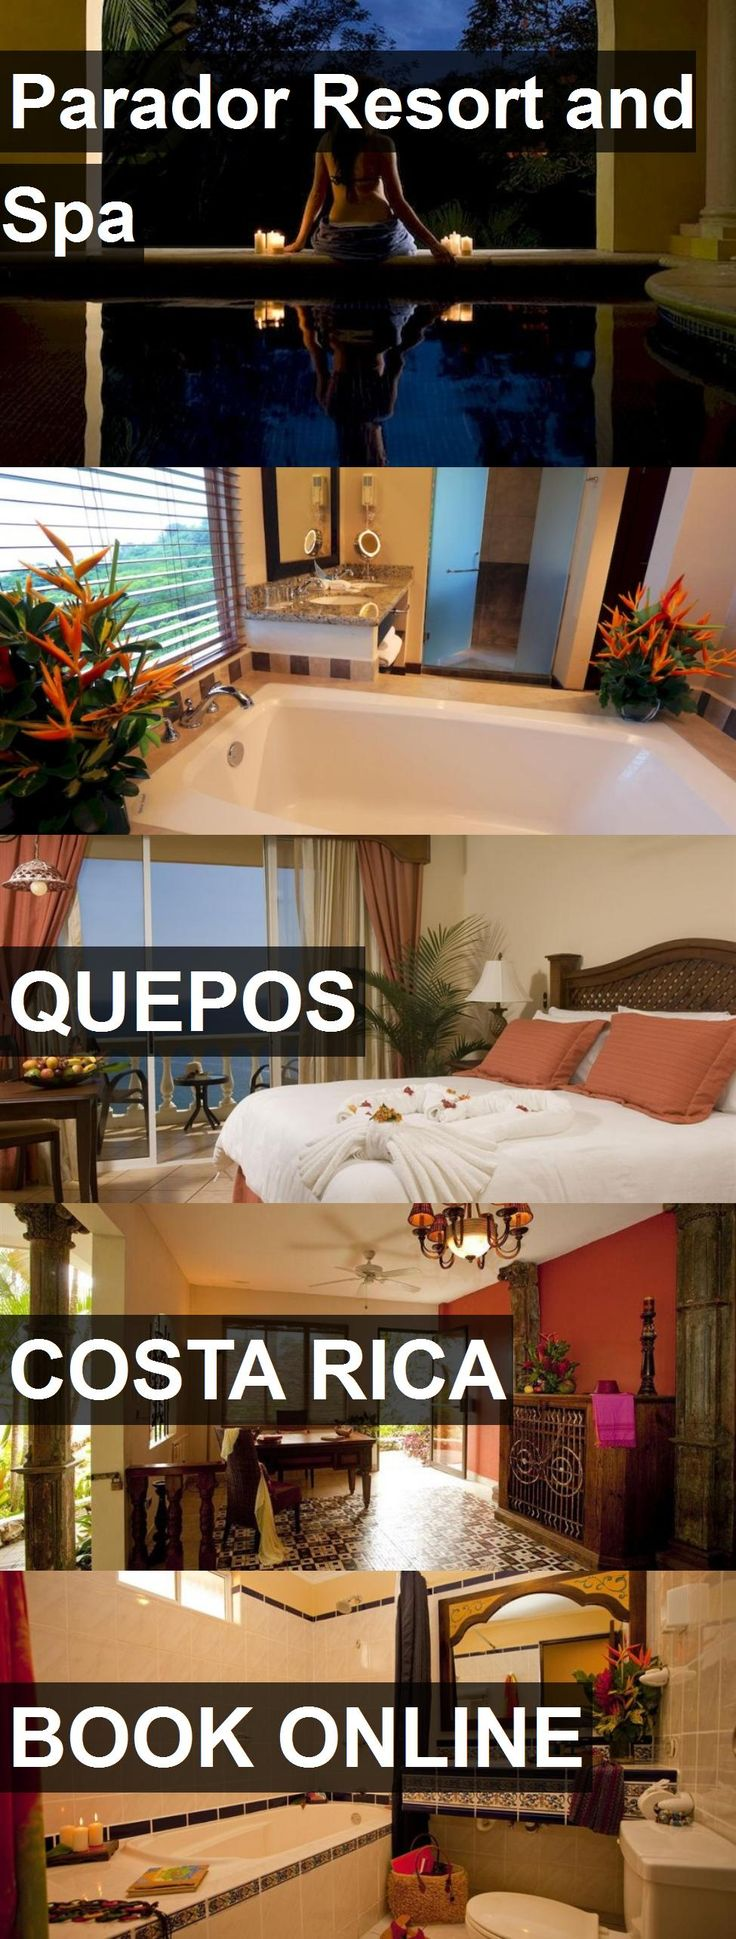 Hotel Parador Resort and Spa in Quepos, Costa Rica. For more information, photos, reviews and best prices please follow the link. #CostaRica #Quepos #travel #vacation #hotel